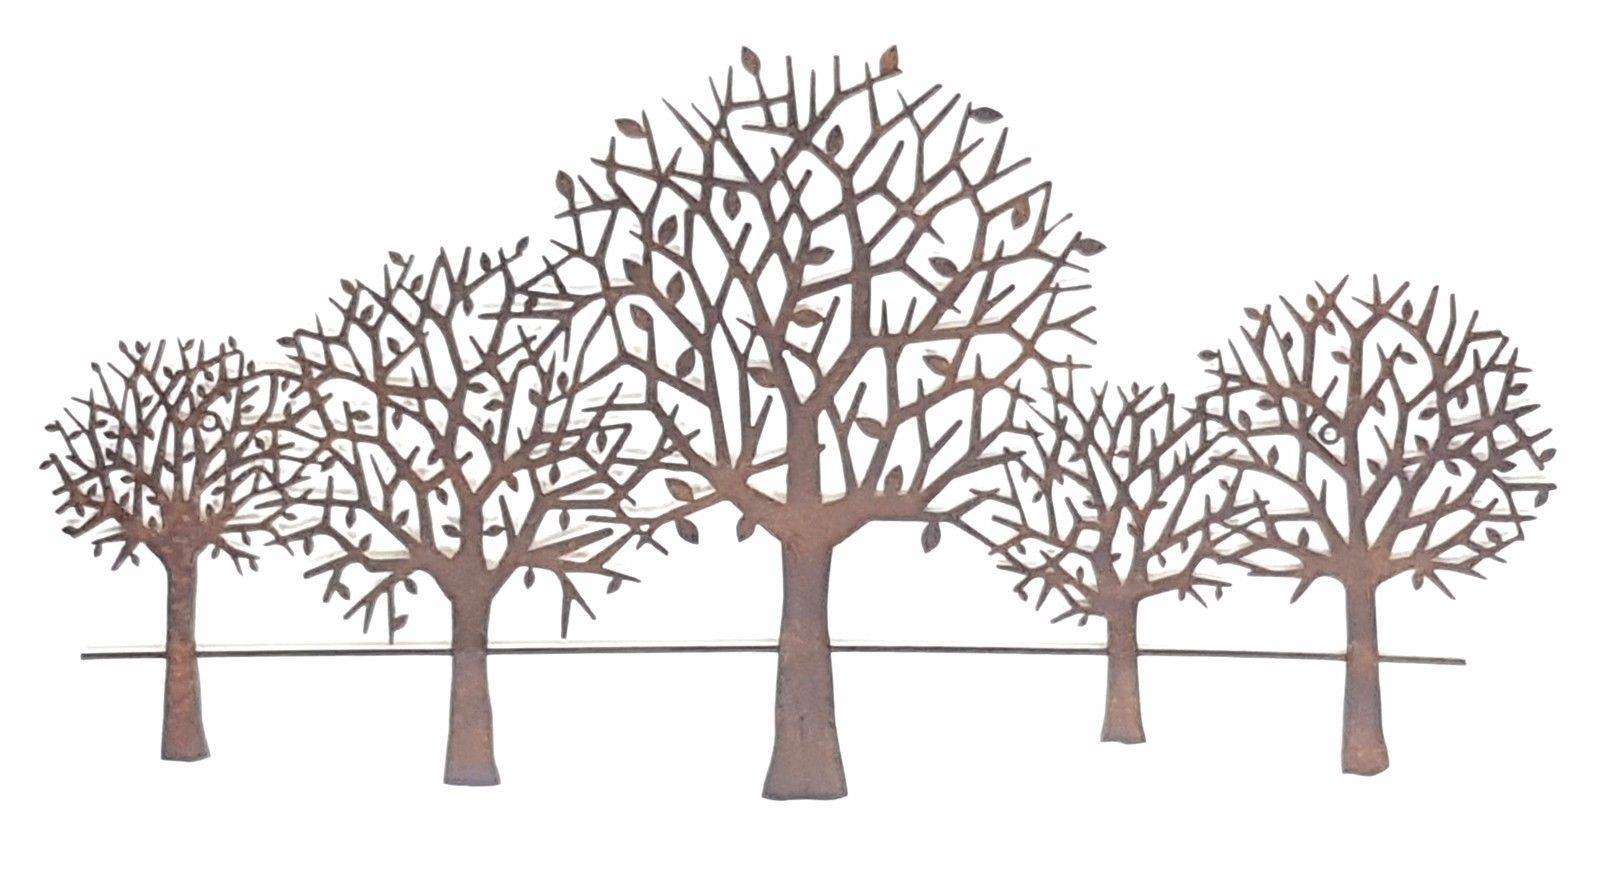 Wall Art Designs: Metal Wall Art Trees Tree Scenery Metal Hanging Inside Current Tree Sculpture Wall Art (View 16 of 20)